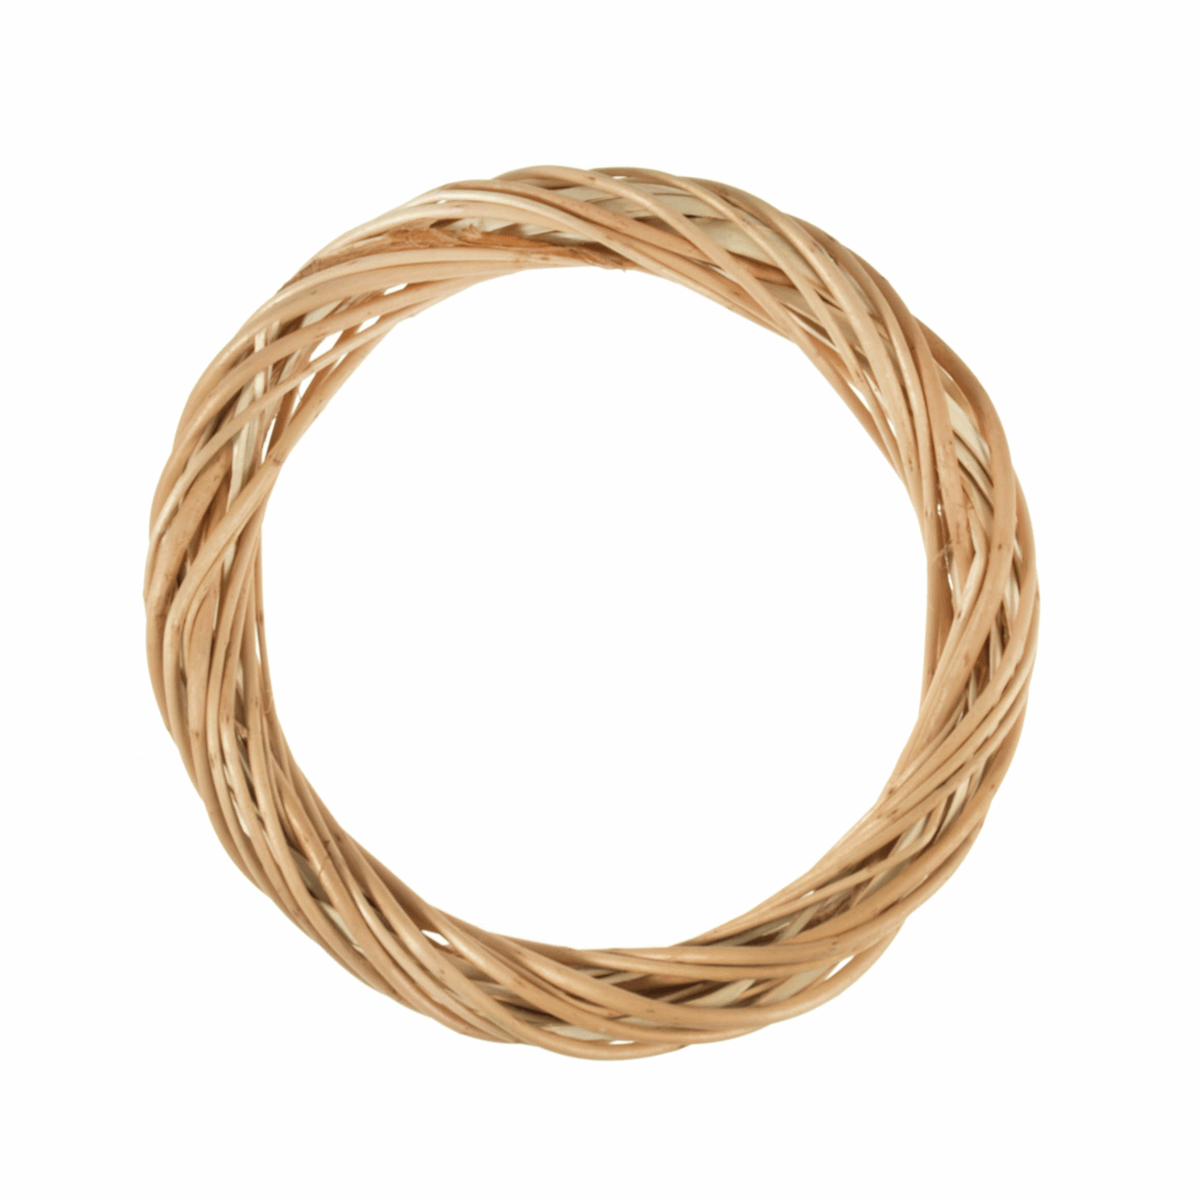 Picture of Wreath Base: Light Willow: 20cm/7.9in